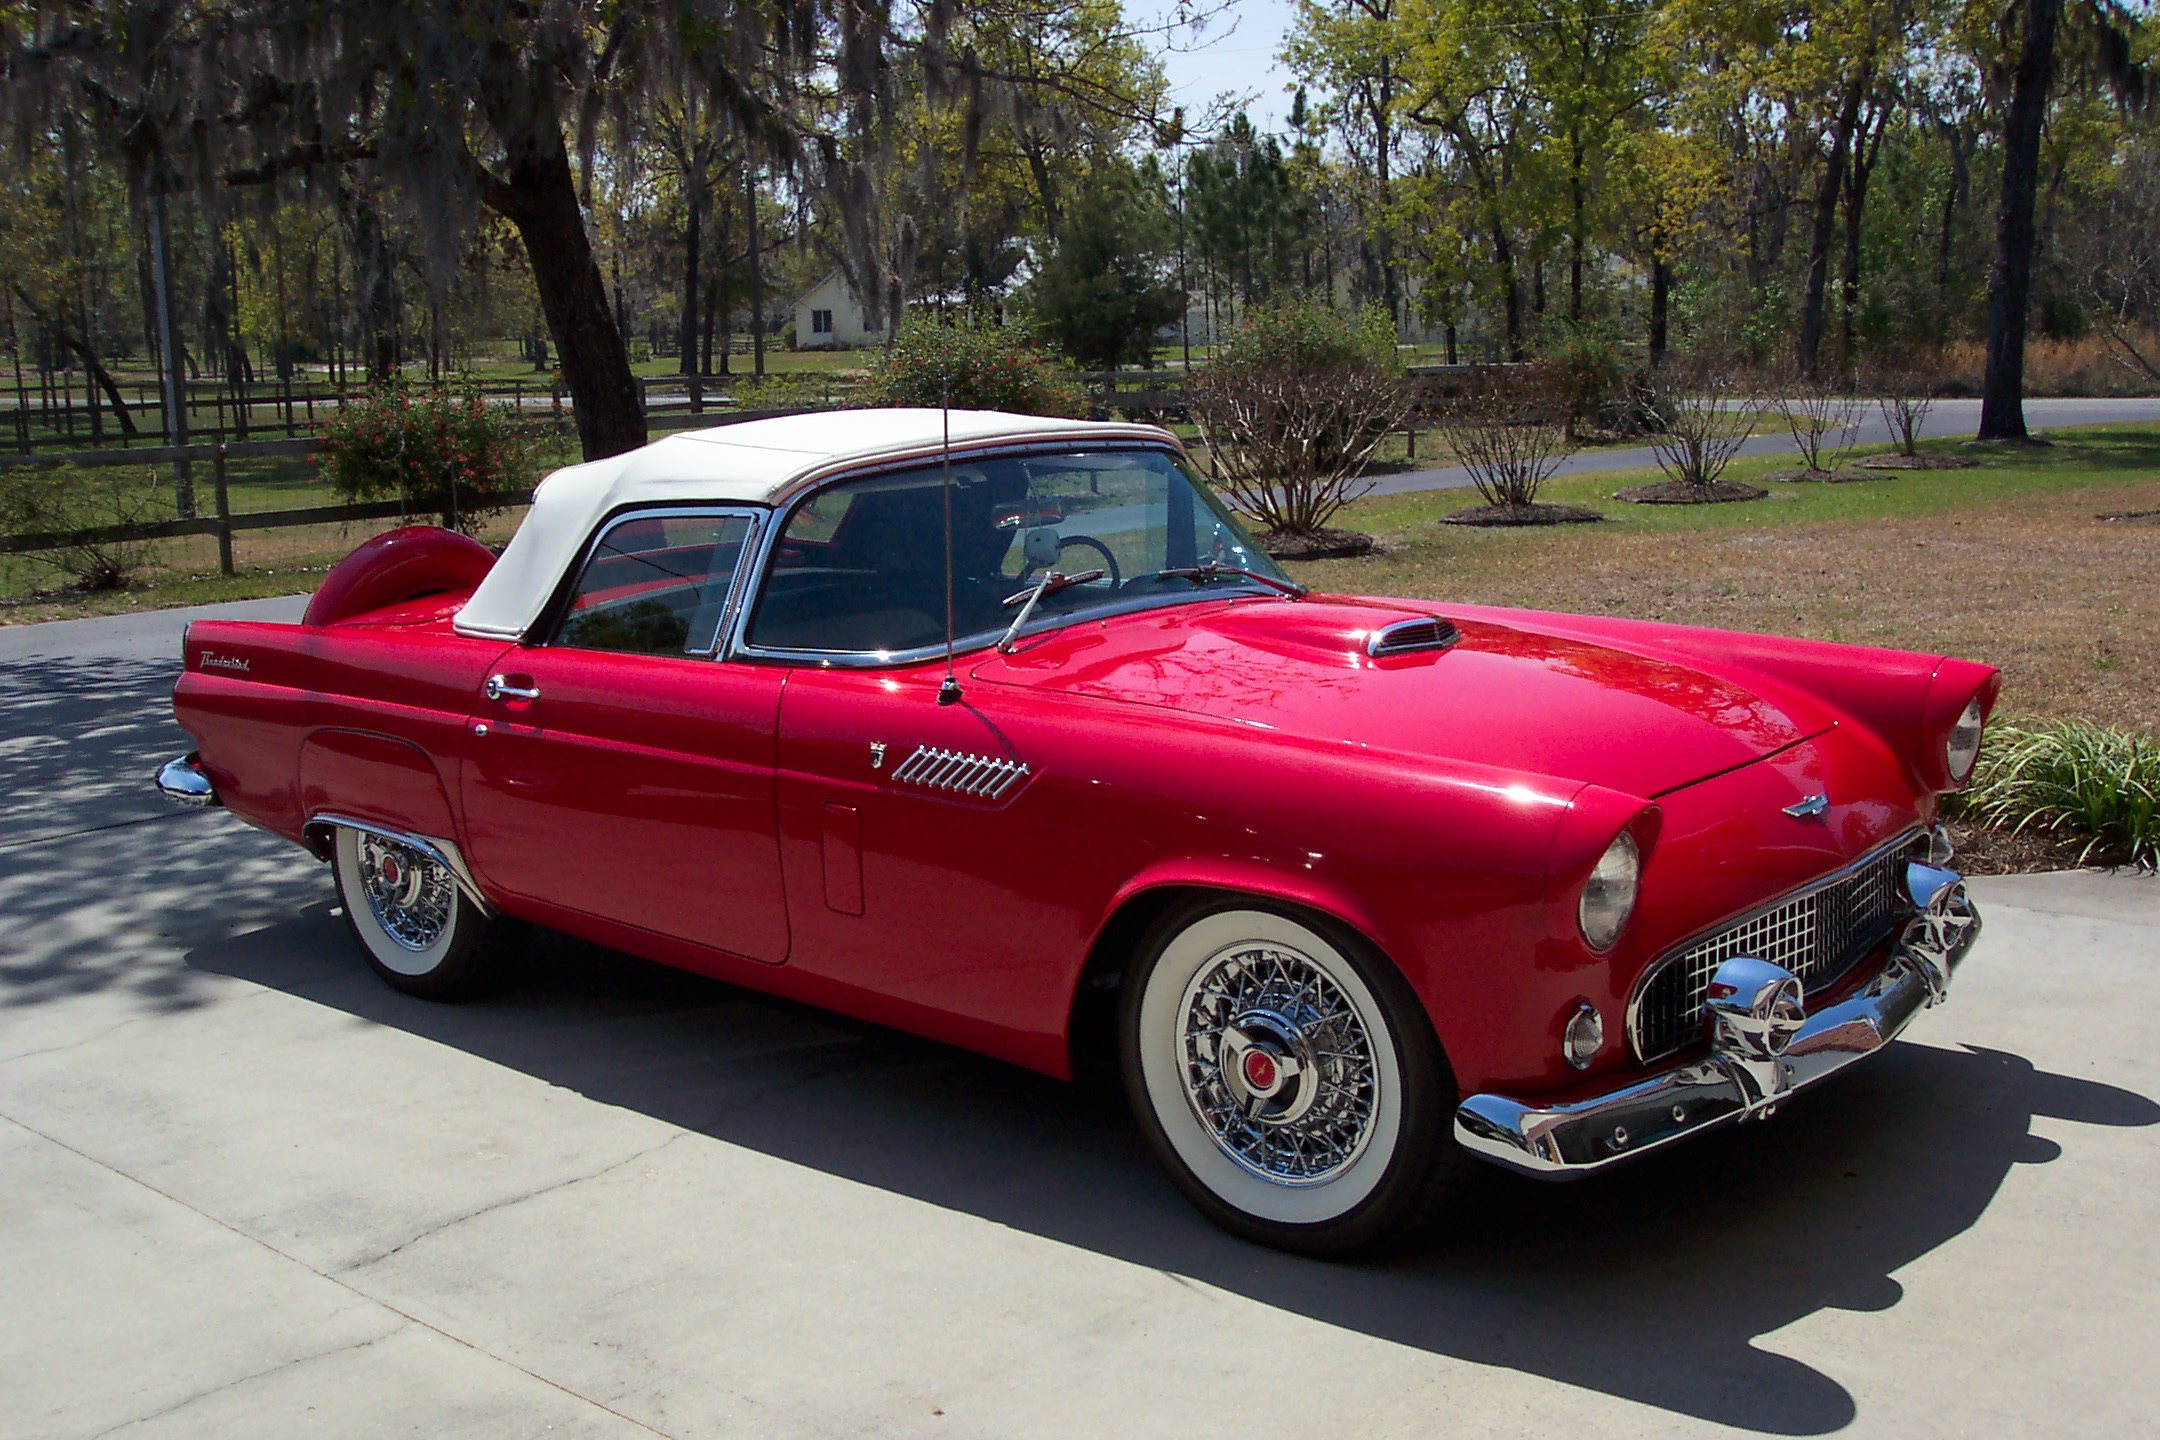 Ford thunderbird 1956 4 ford thunderbird 1956 4